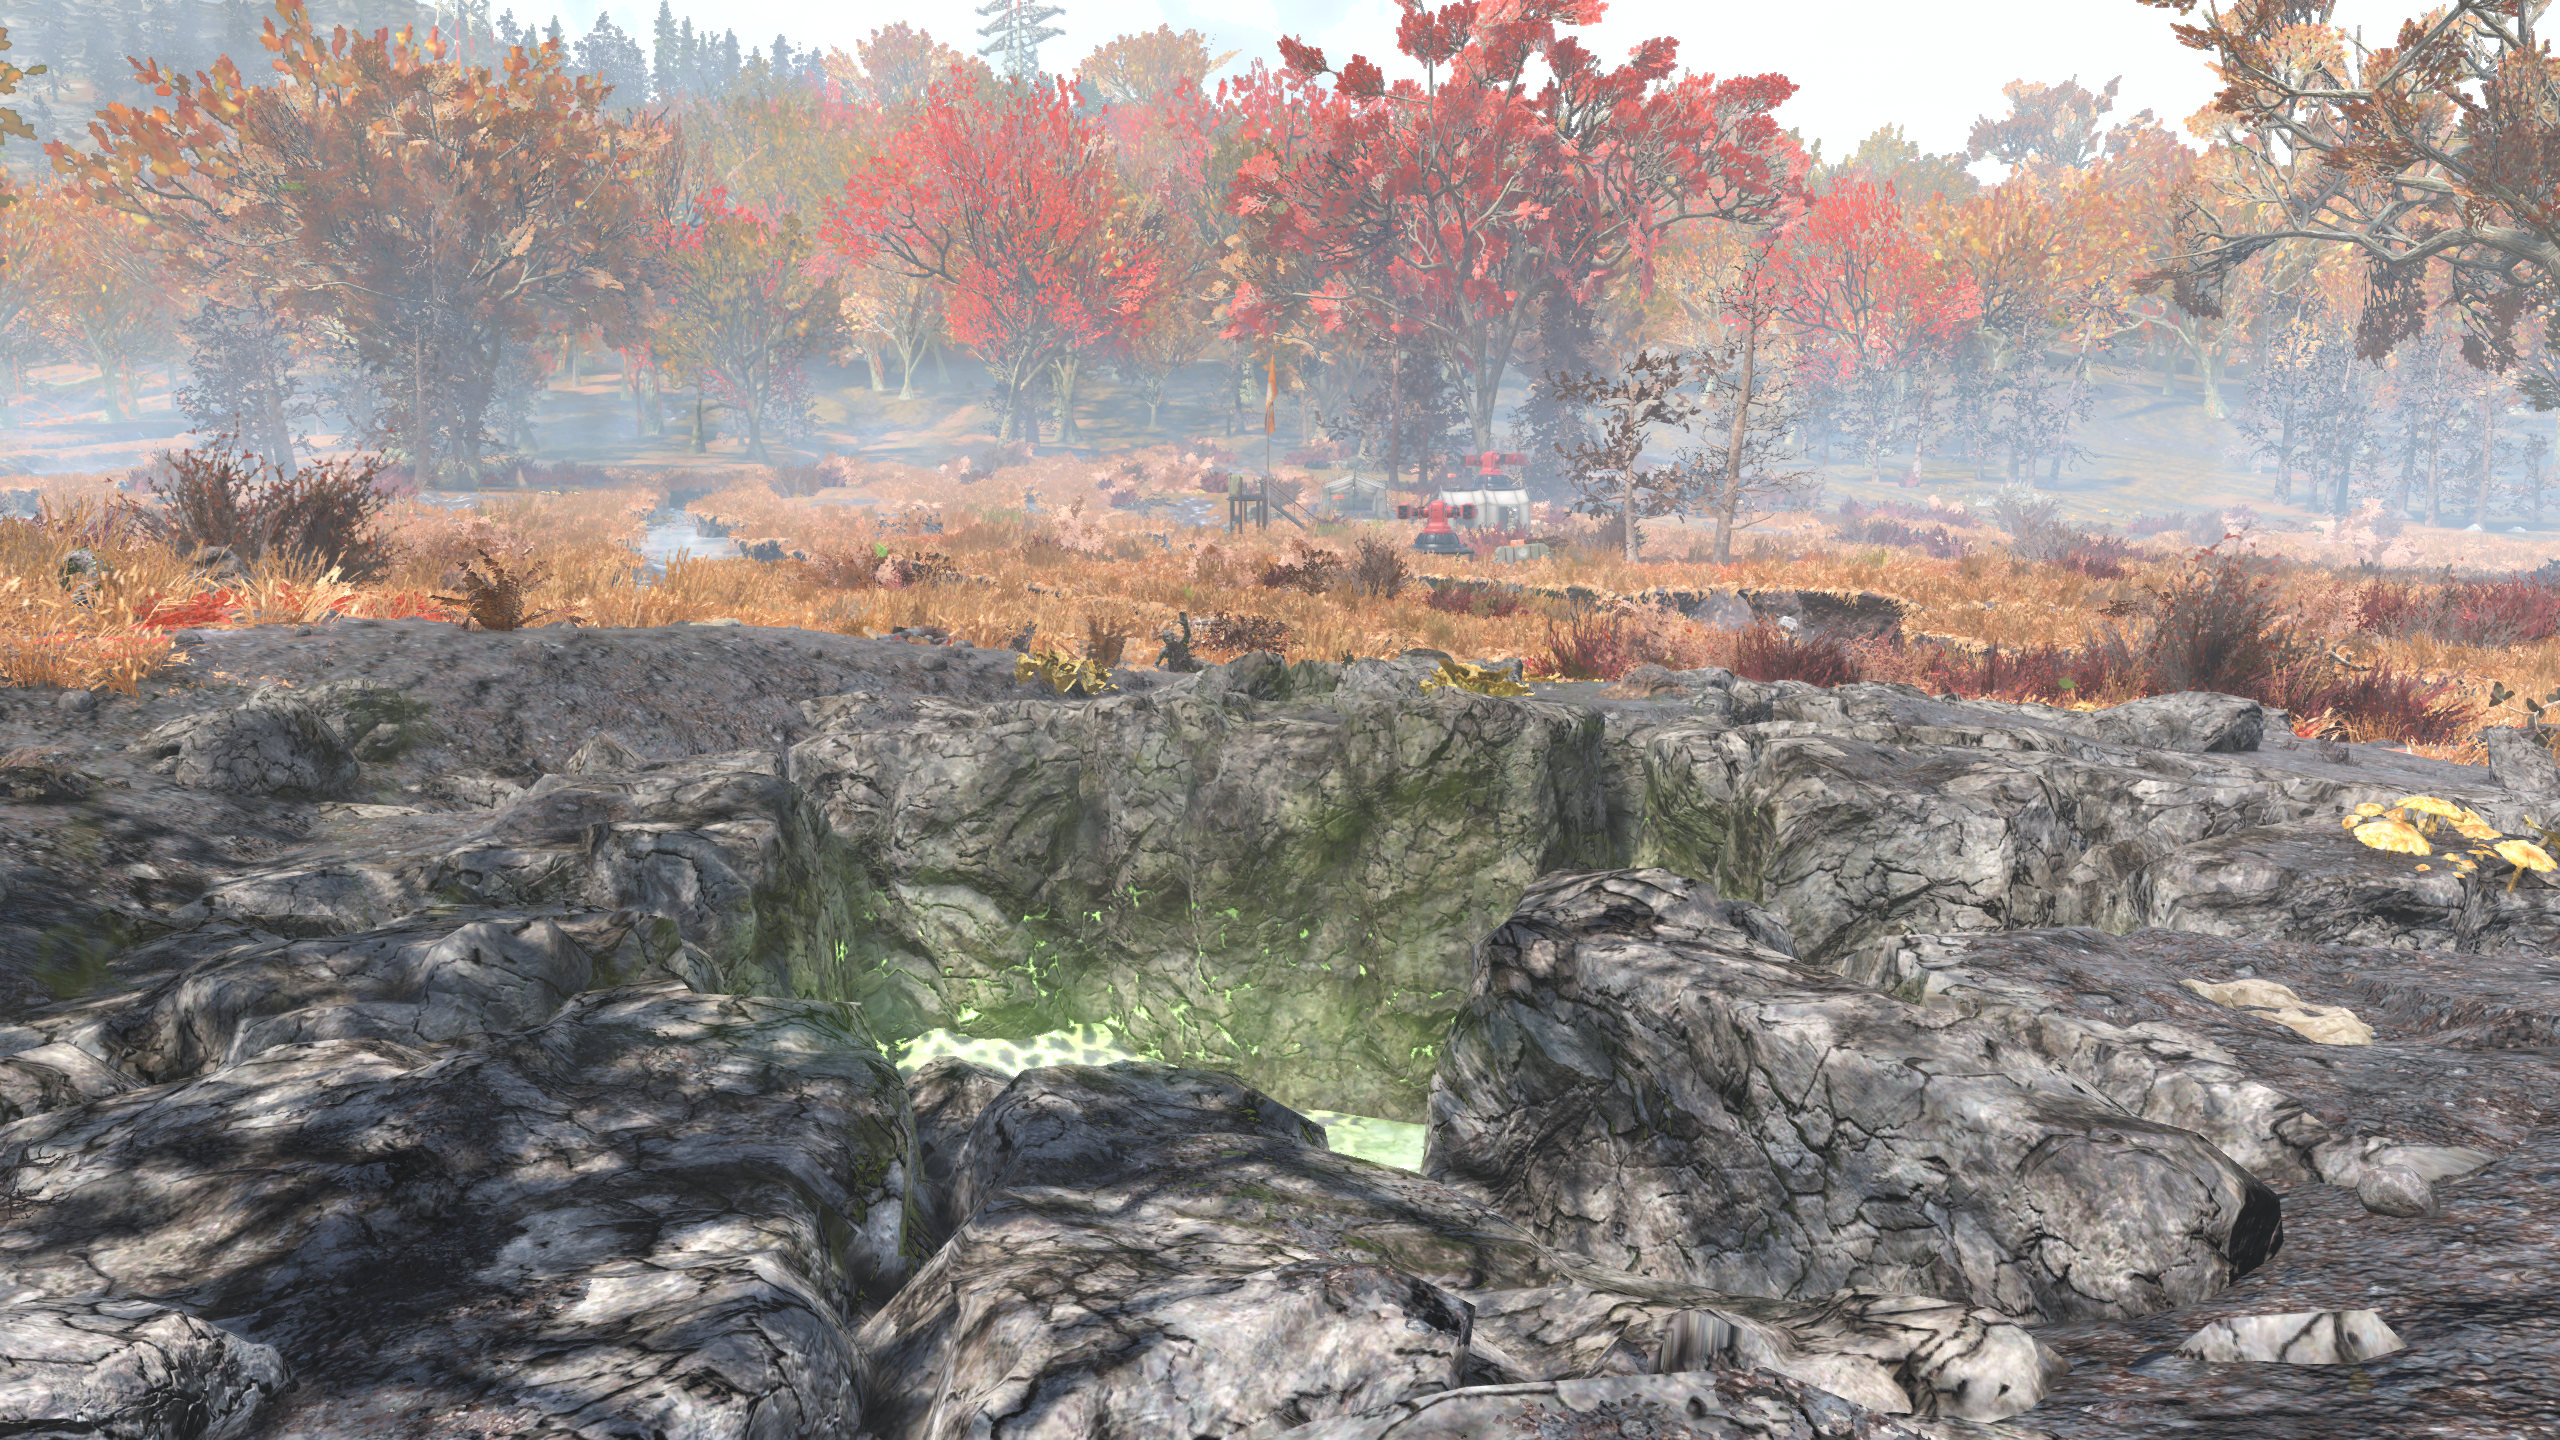 Fallout 76 Fissure Site unnamed SE of Firebase LT